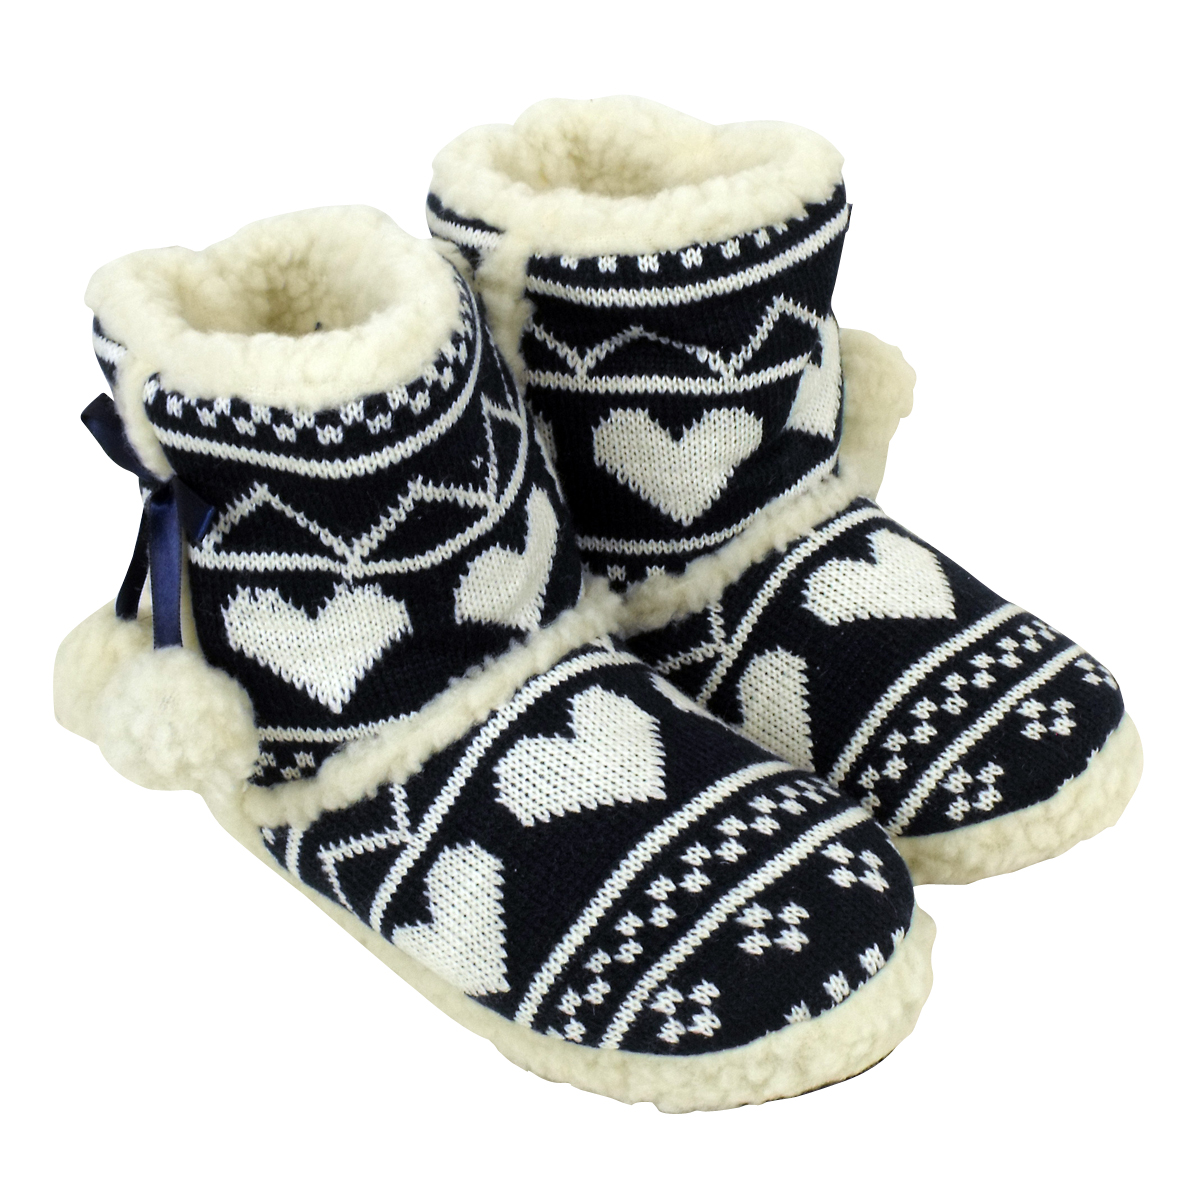 Free shipping on women's slippers at coolvloadx4.ga Shop for slippers in the latest colors from the best brands like UGG, Halfinger, Acron and more. Totally free shipping and returns.